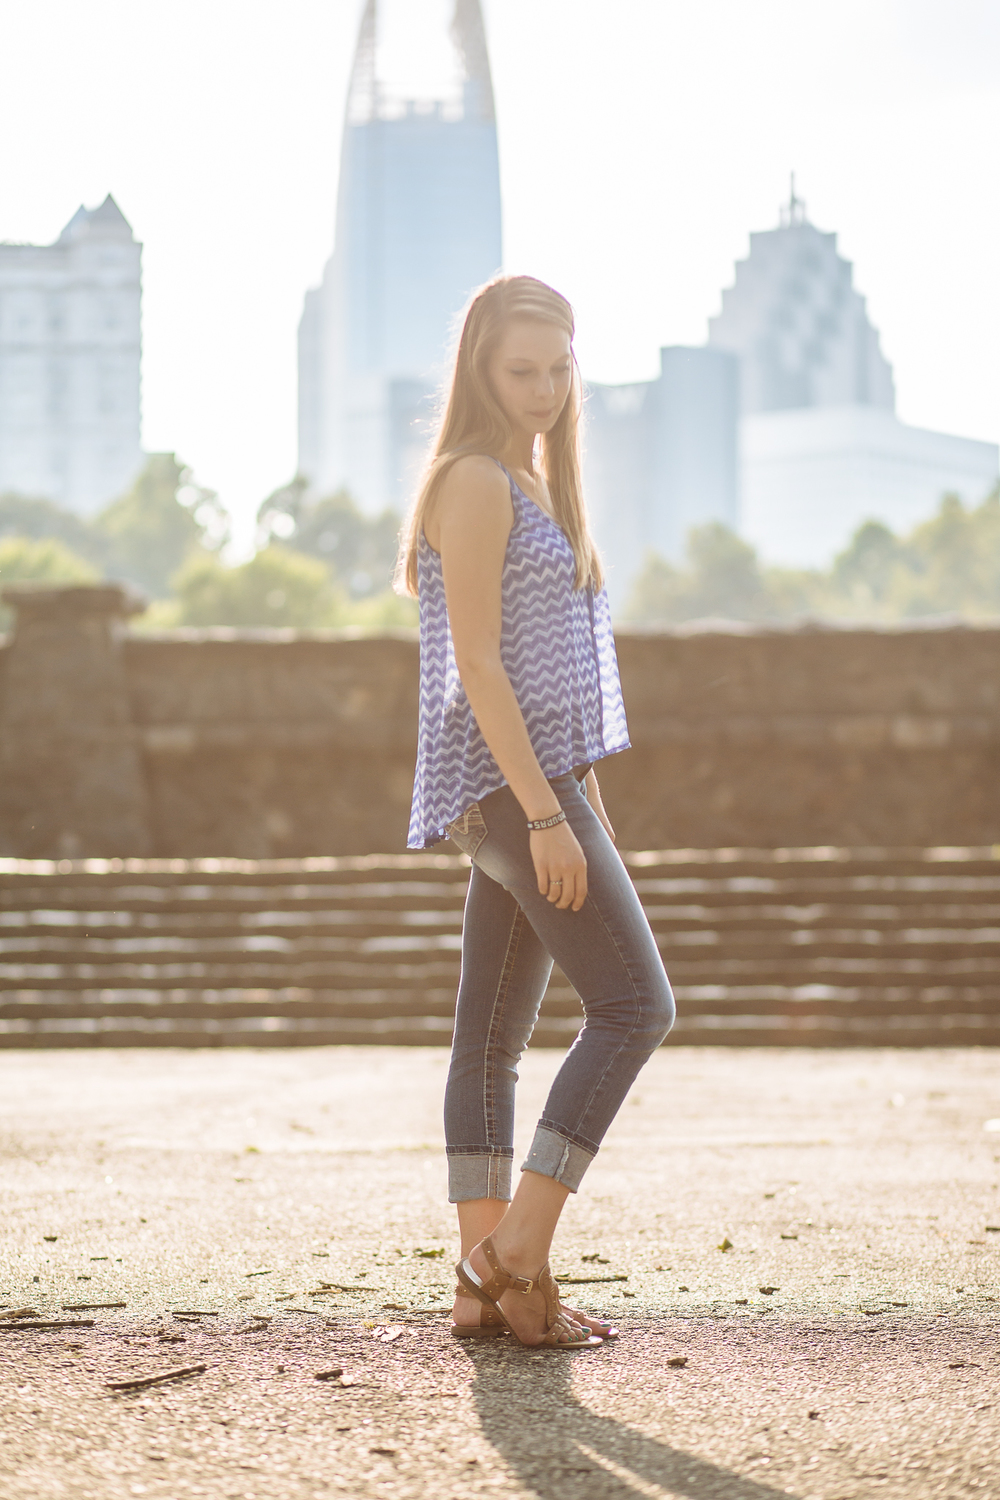 piedmont_park_atlanta_atl_photo_senior_portaits_erin_spruell_photography_9